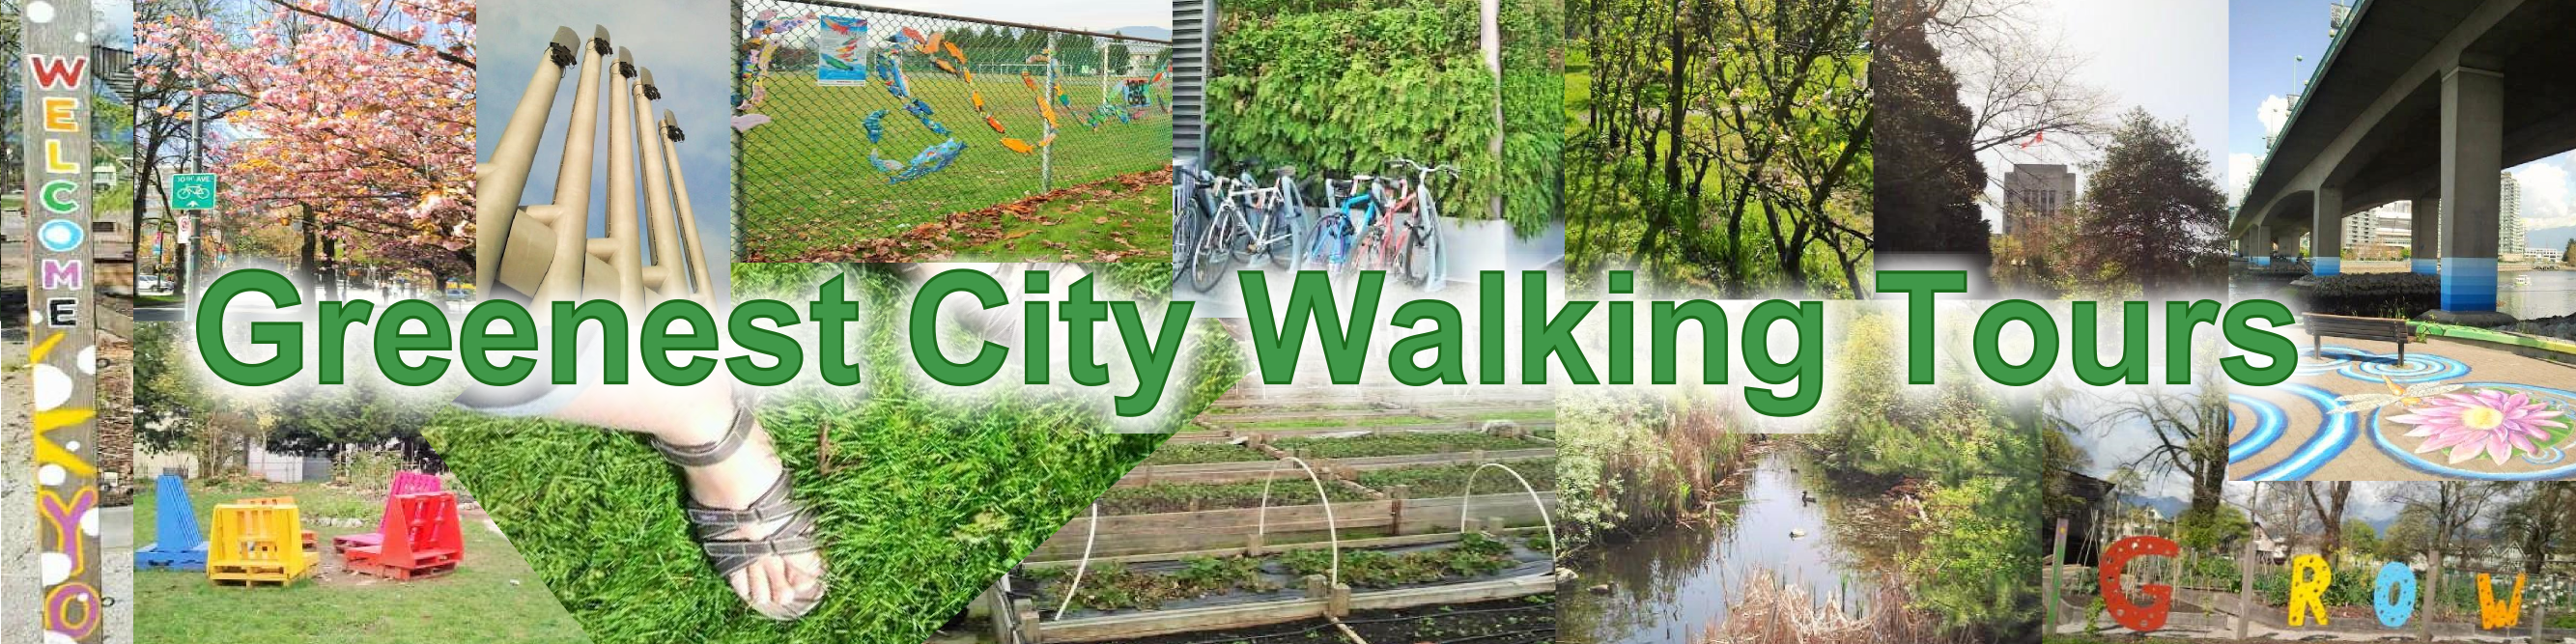 Greenest City Walking Tours